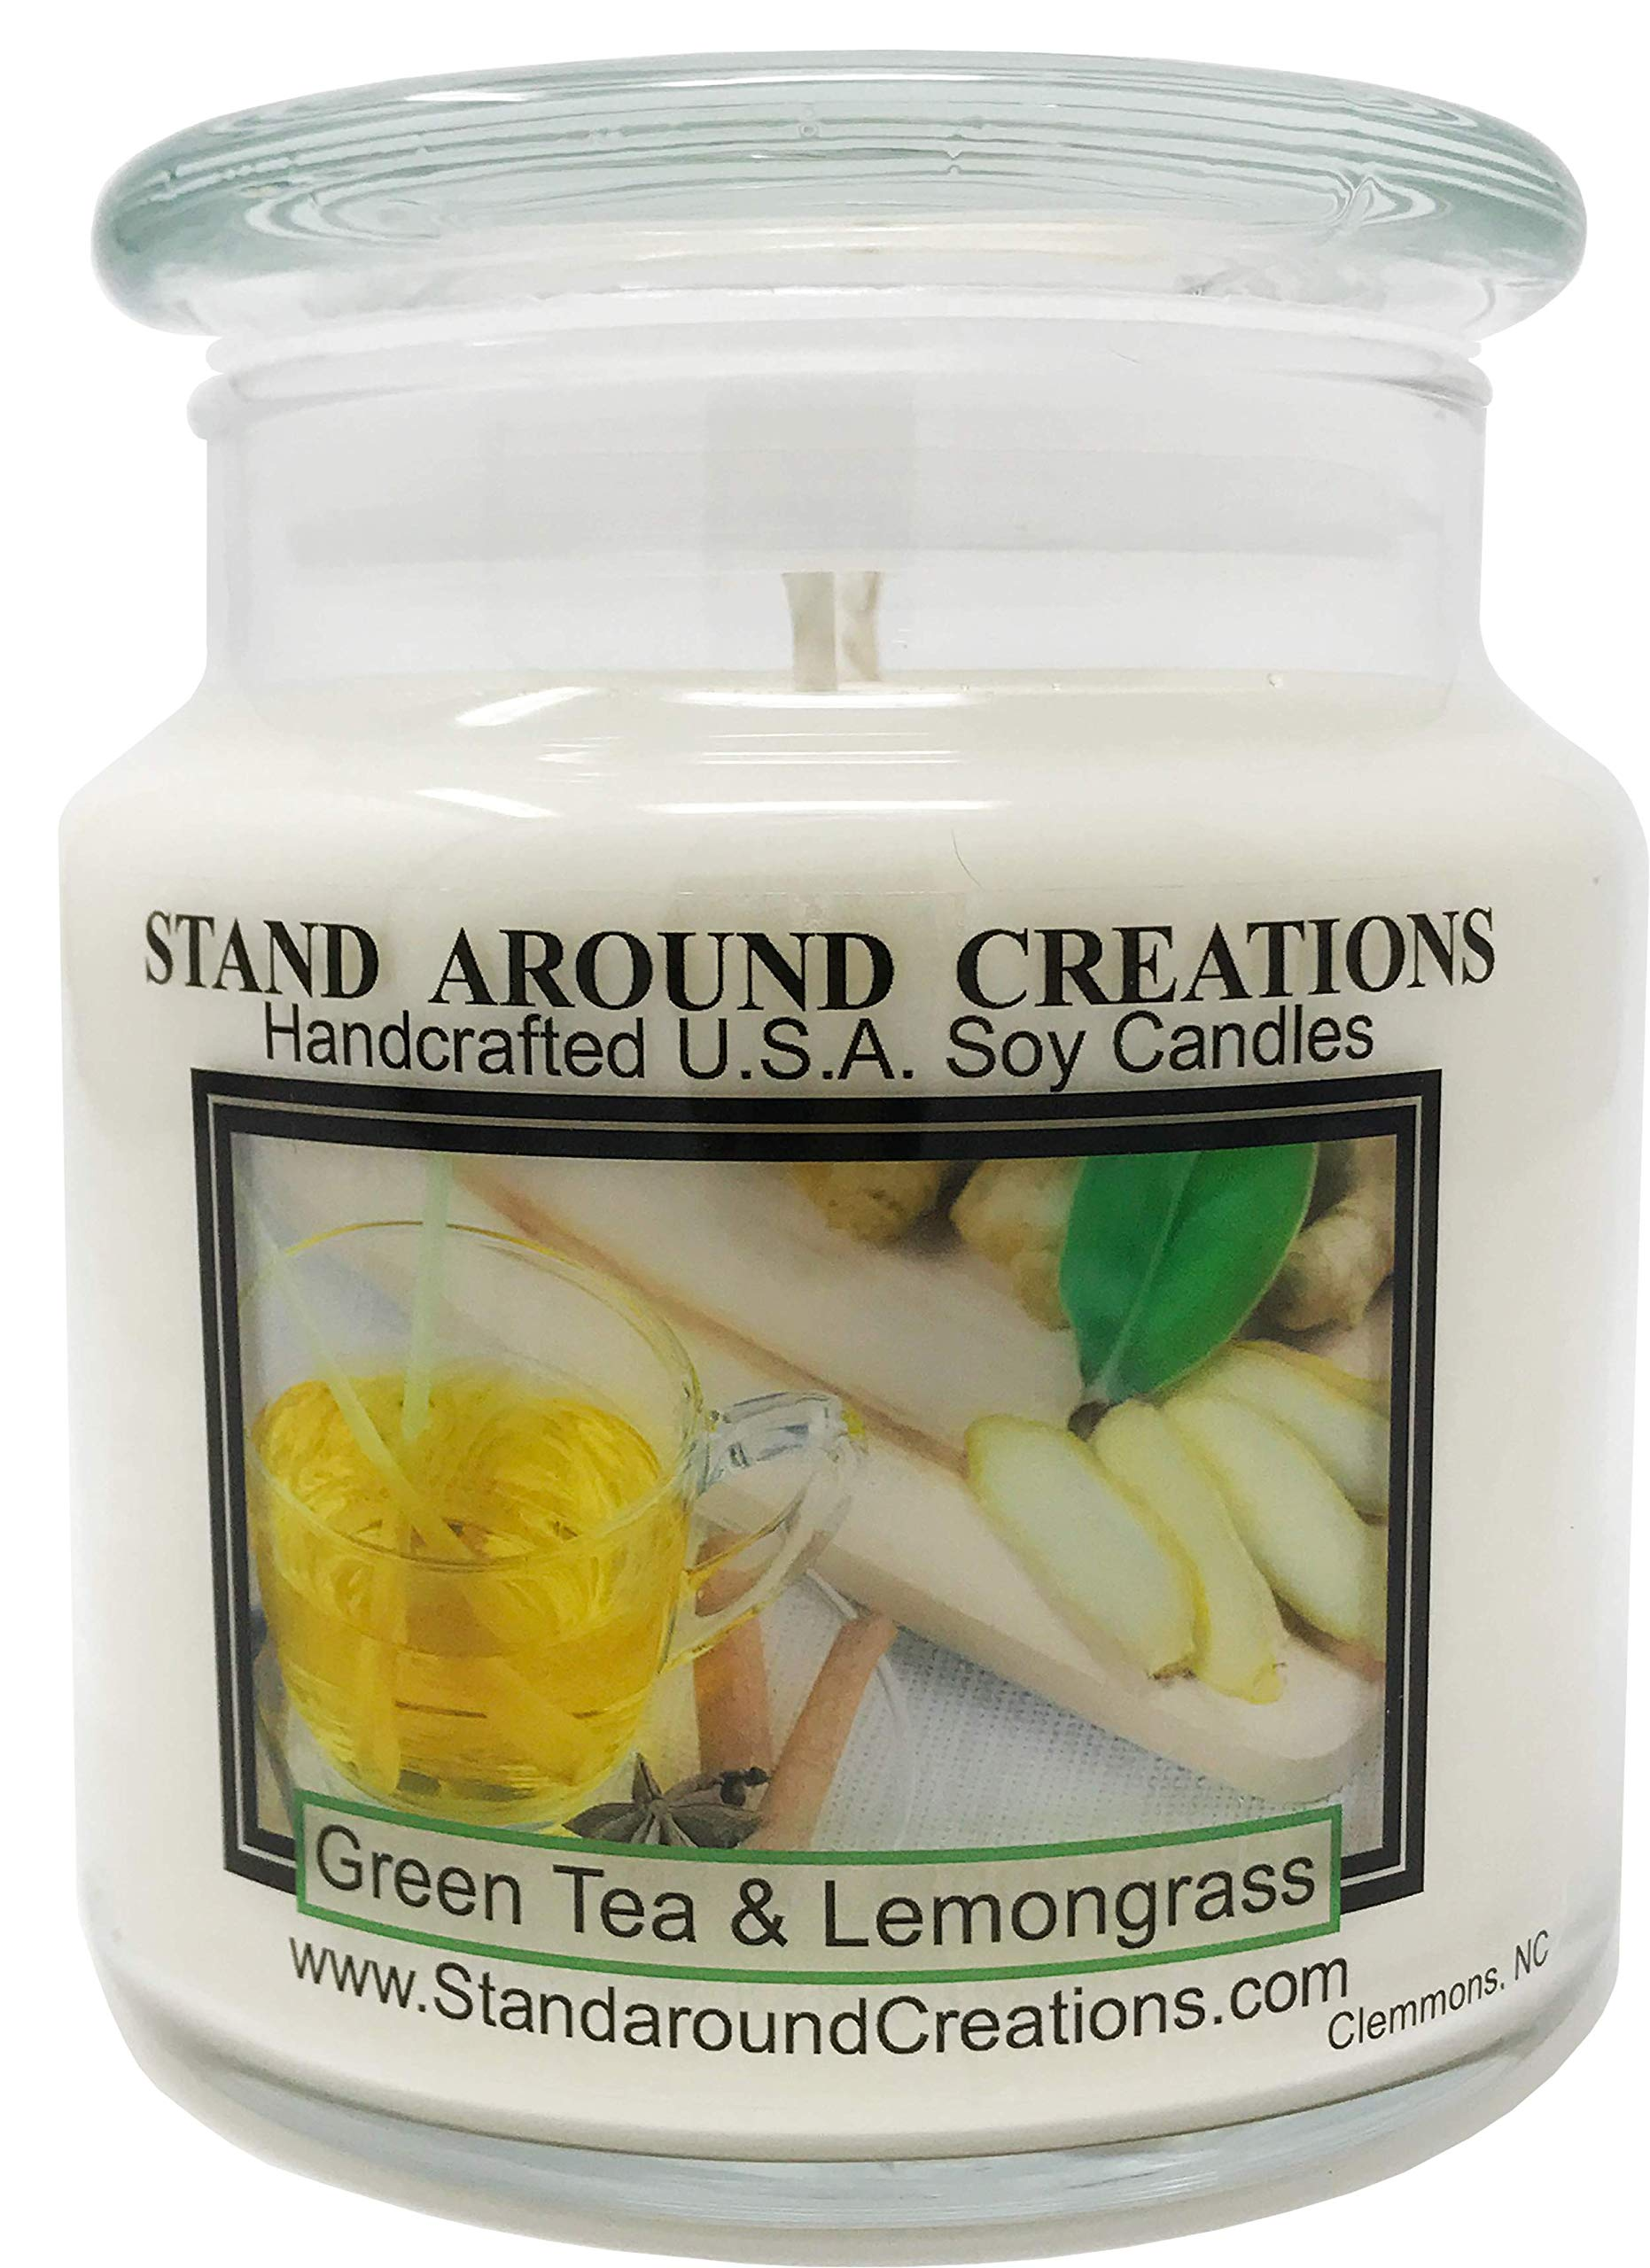 Premium 100% Soy Apothecary Candle - 16 oz. -Green Tea and Lemon Grass: Bright and natural citrus begins w/notes of bergamot tea and plum w/jasmine and orange flowers w/a clean citrus musk.